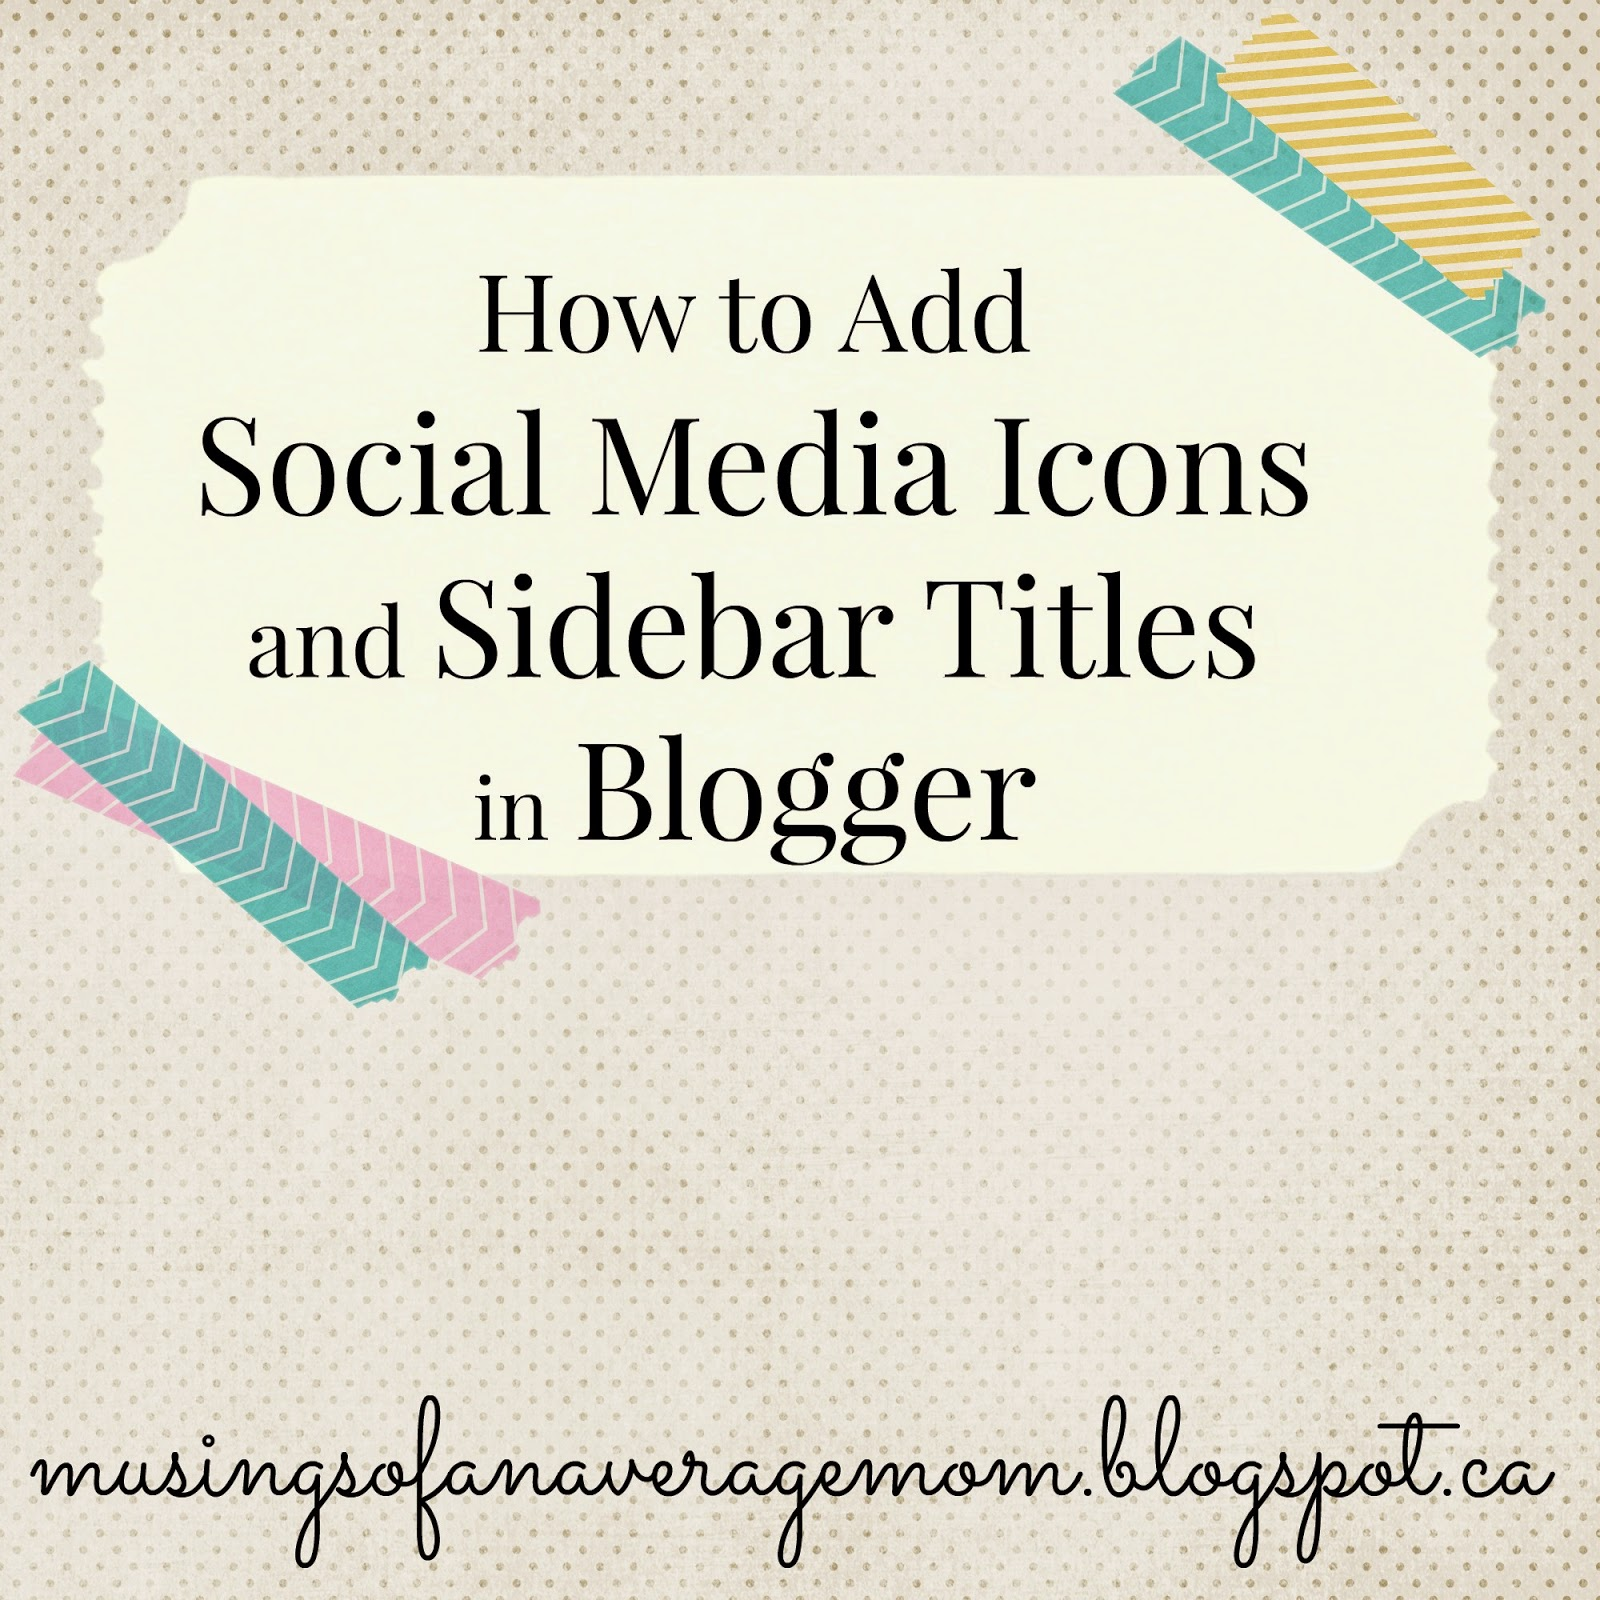 http://musingsofanaveragemom.blogspot.ca/2014/09/how-to-install-sidebar-titles-and.html